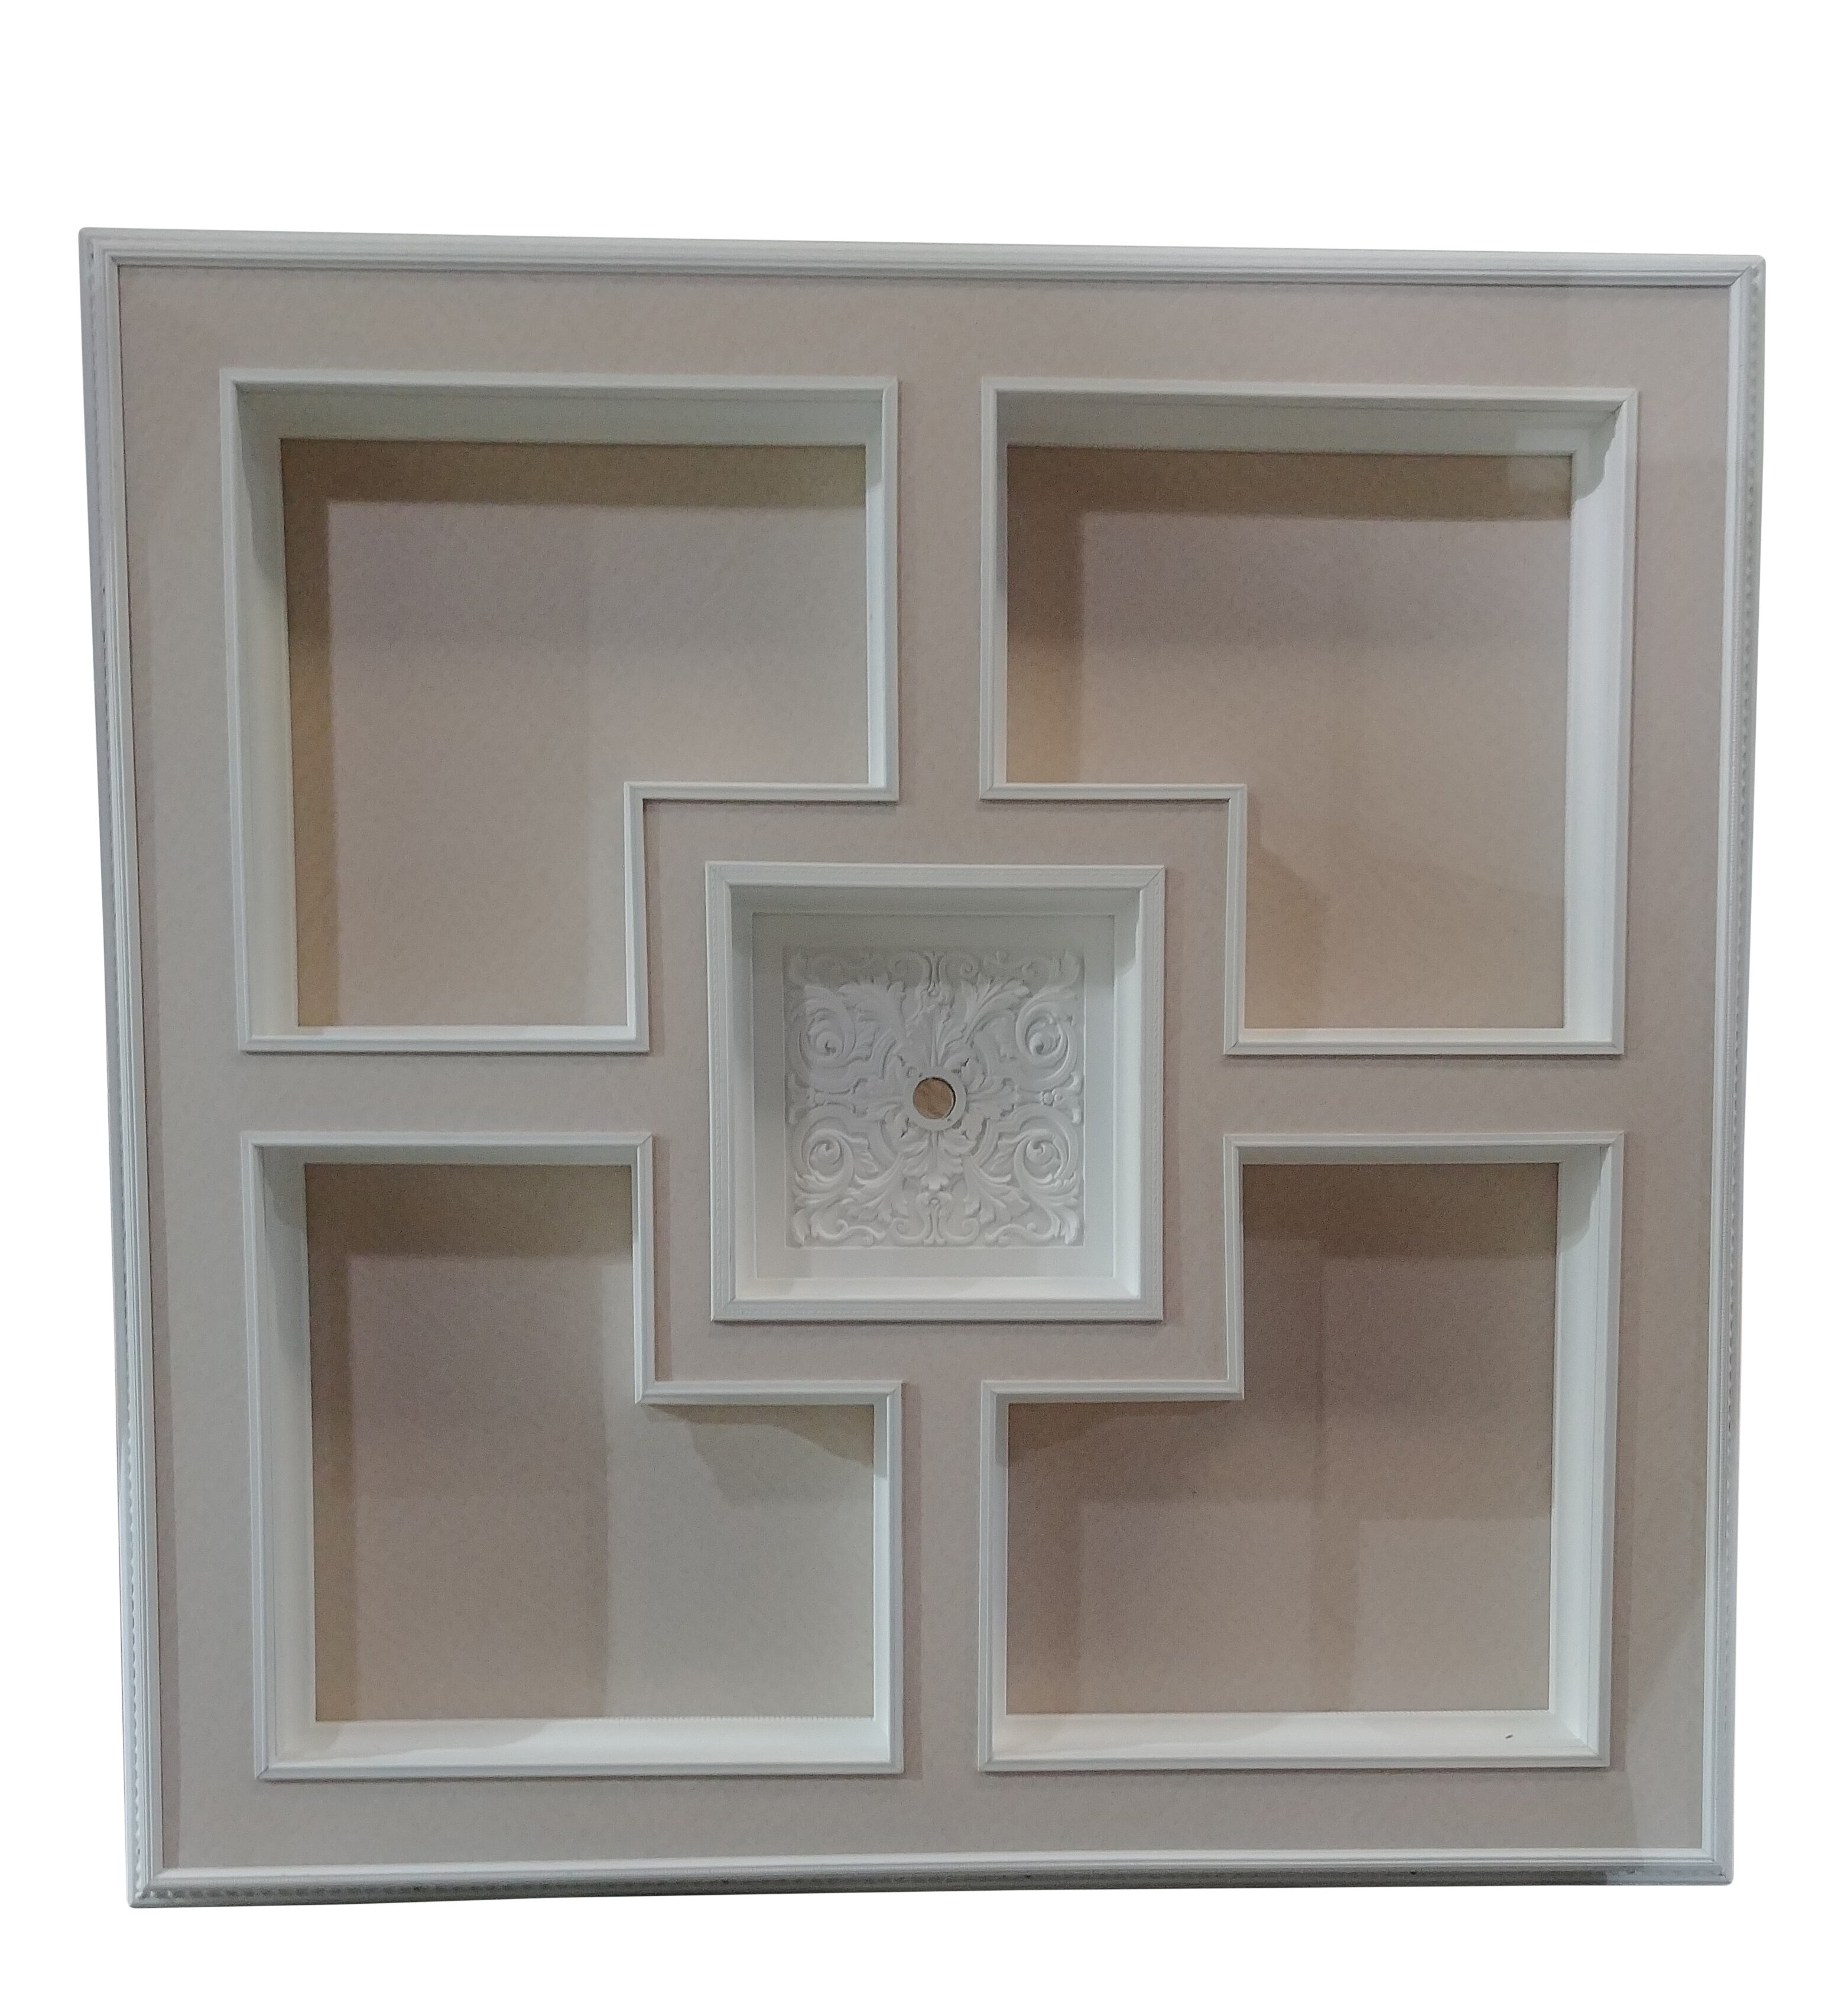 Majestic Square Ceiling Medallion